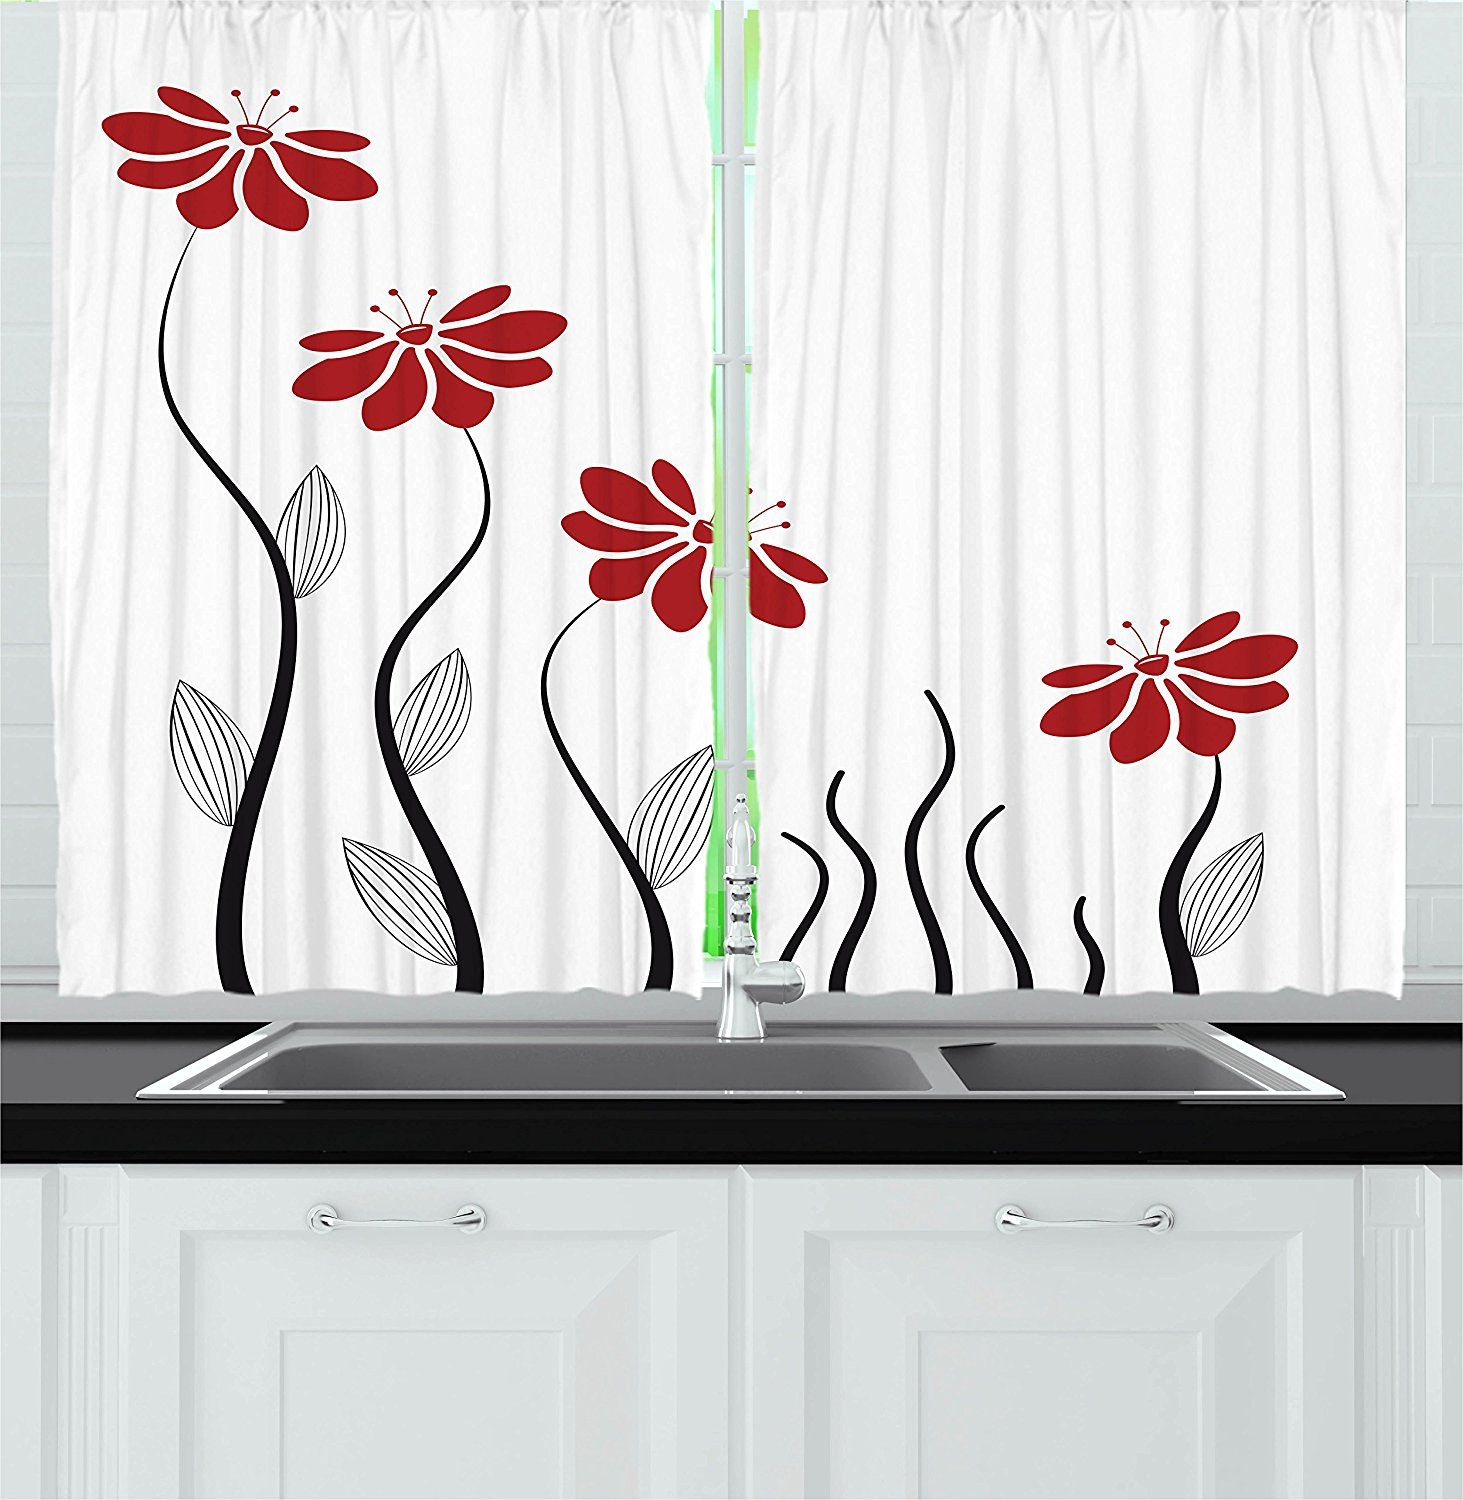 Flower Decor Kitchen Curtains By Ambesonne Floral Petals With Striped Leaves And Lines Modern Geometric De Kitchen Curtains Curtain Decor Curtains